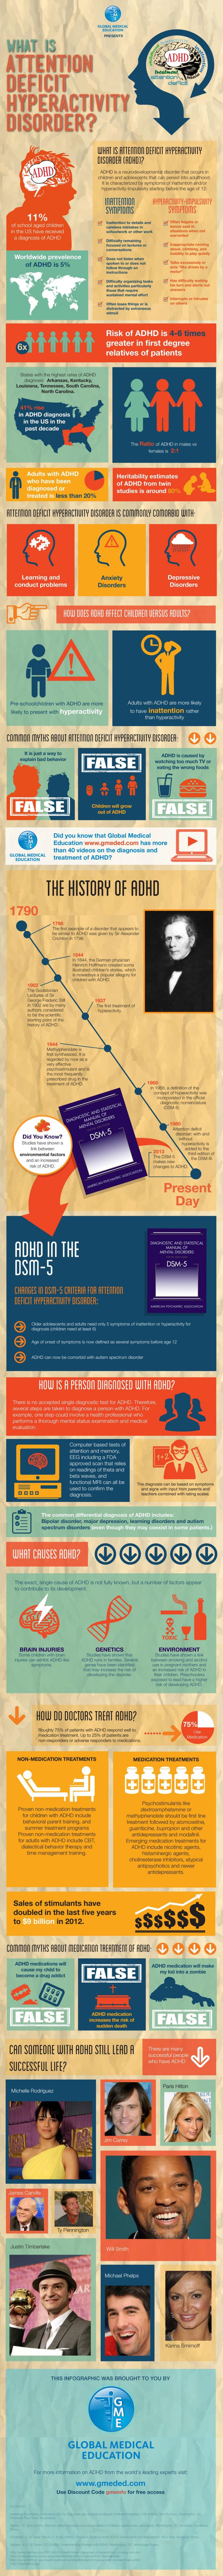 ADHD: What Is It & How Is It Treated? by www.riddsnetwork.in (Indian SEO Company)